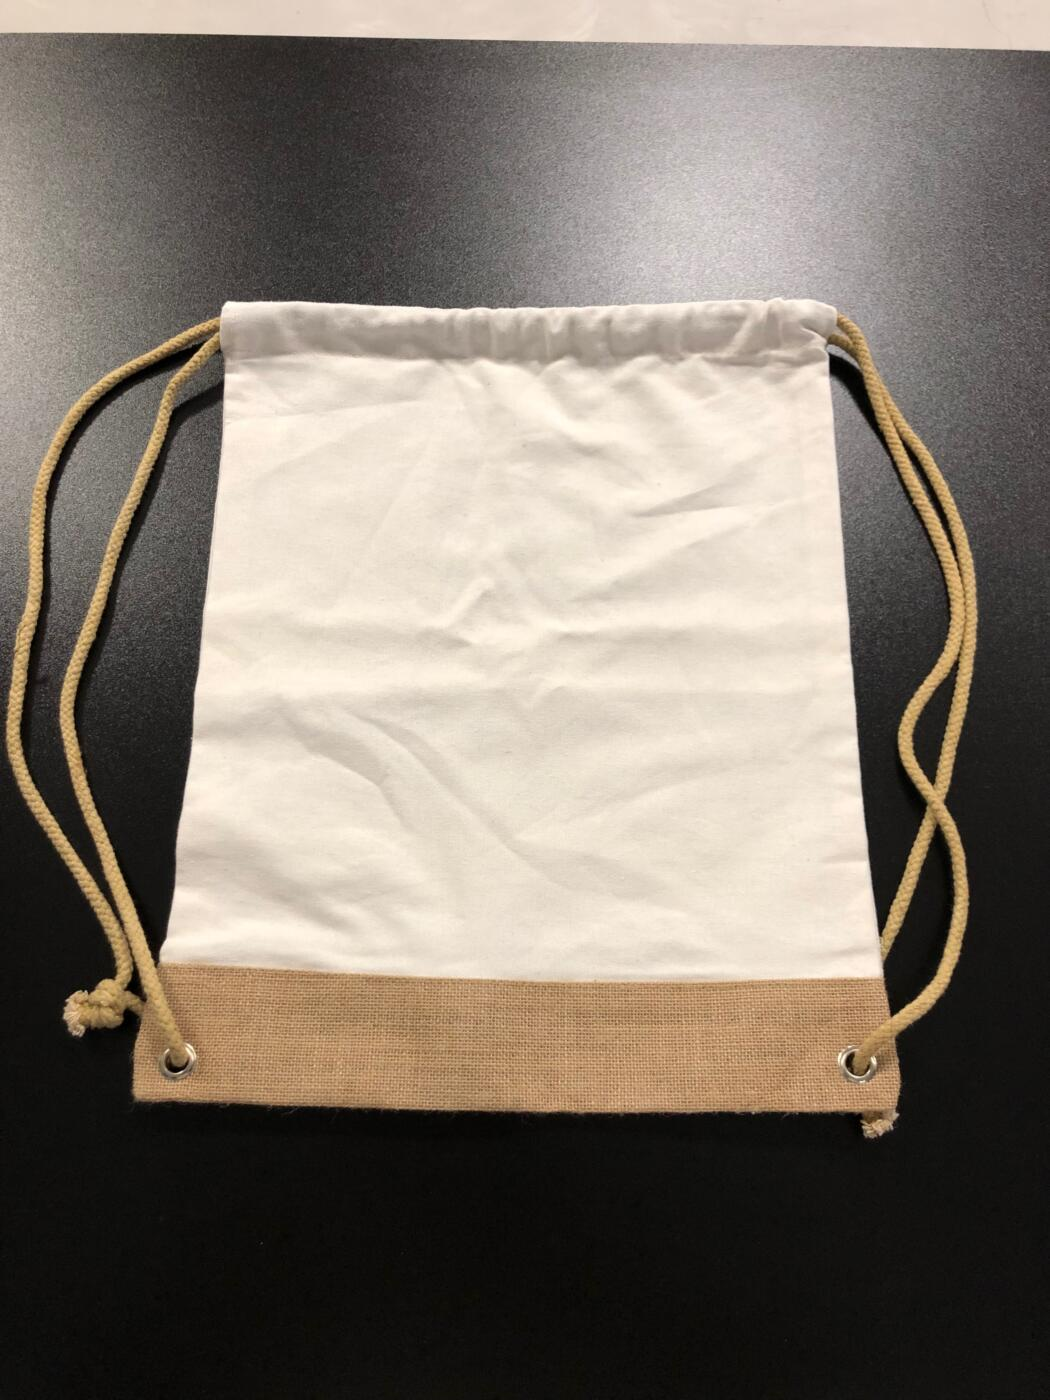 jute and cotton shopping bag PMG